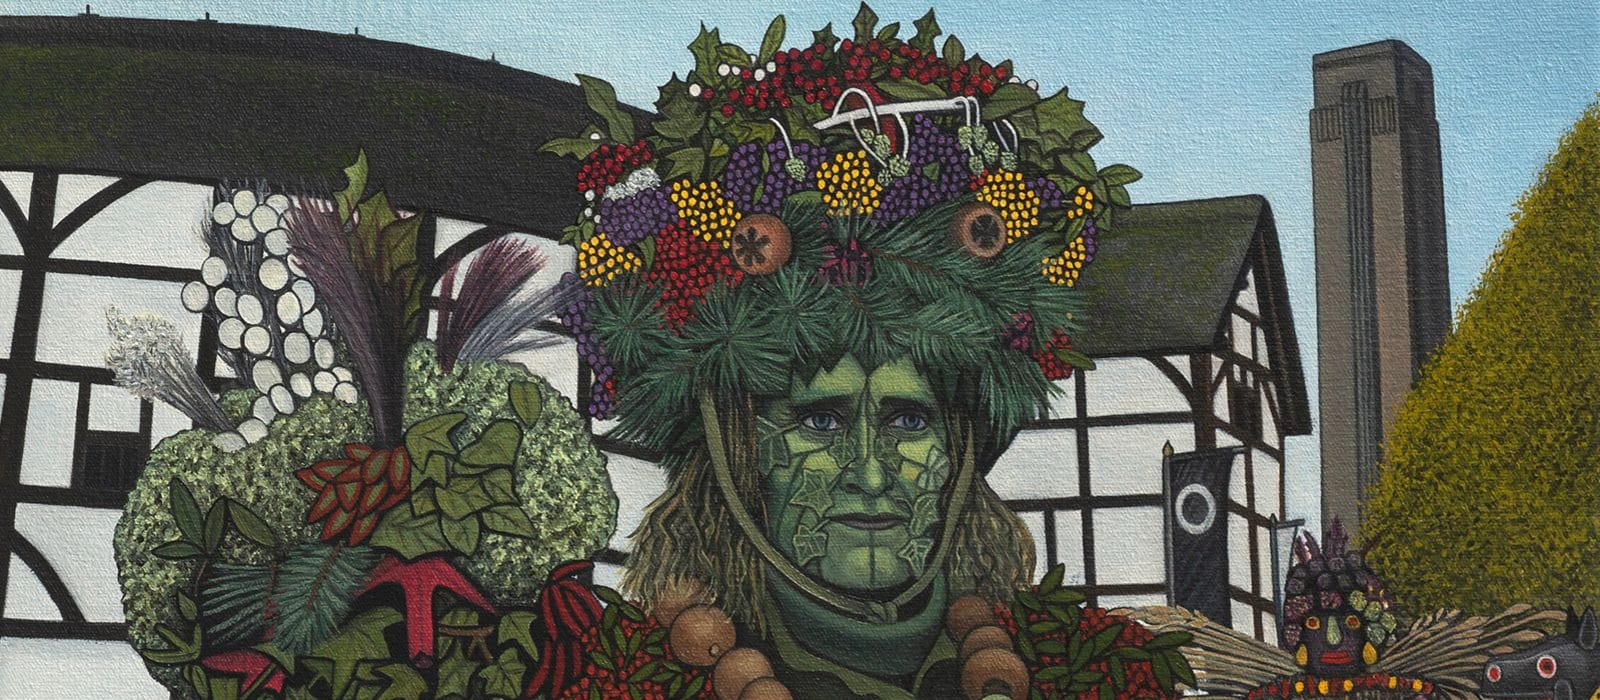 Ben Edge The Greenman of Bankside (2019)